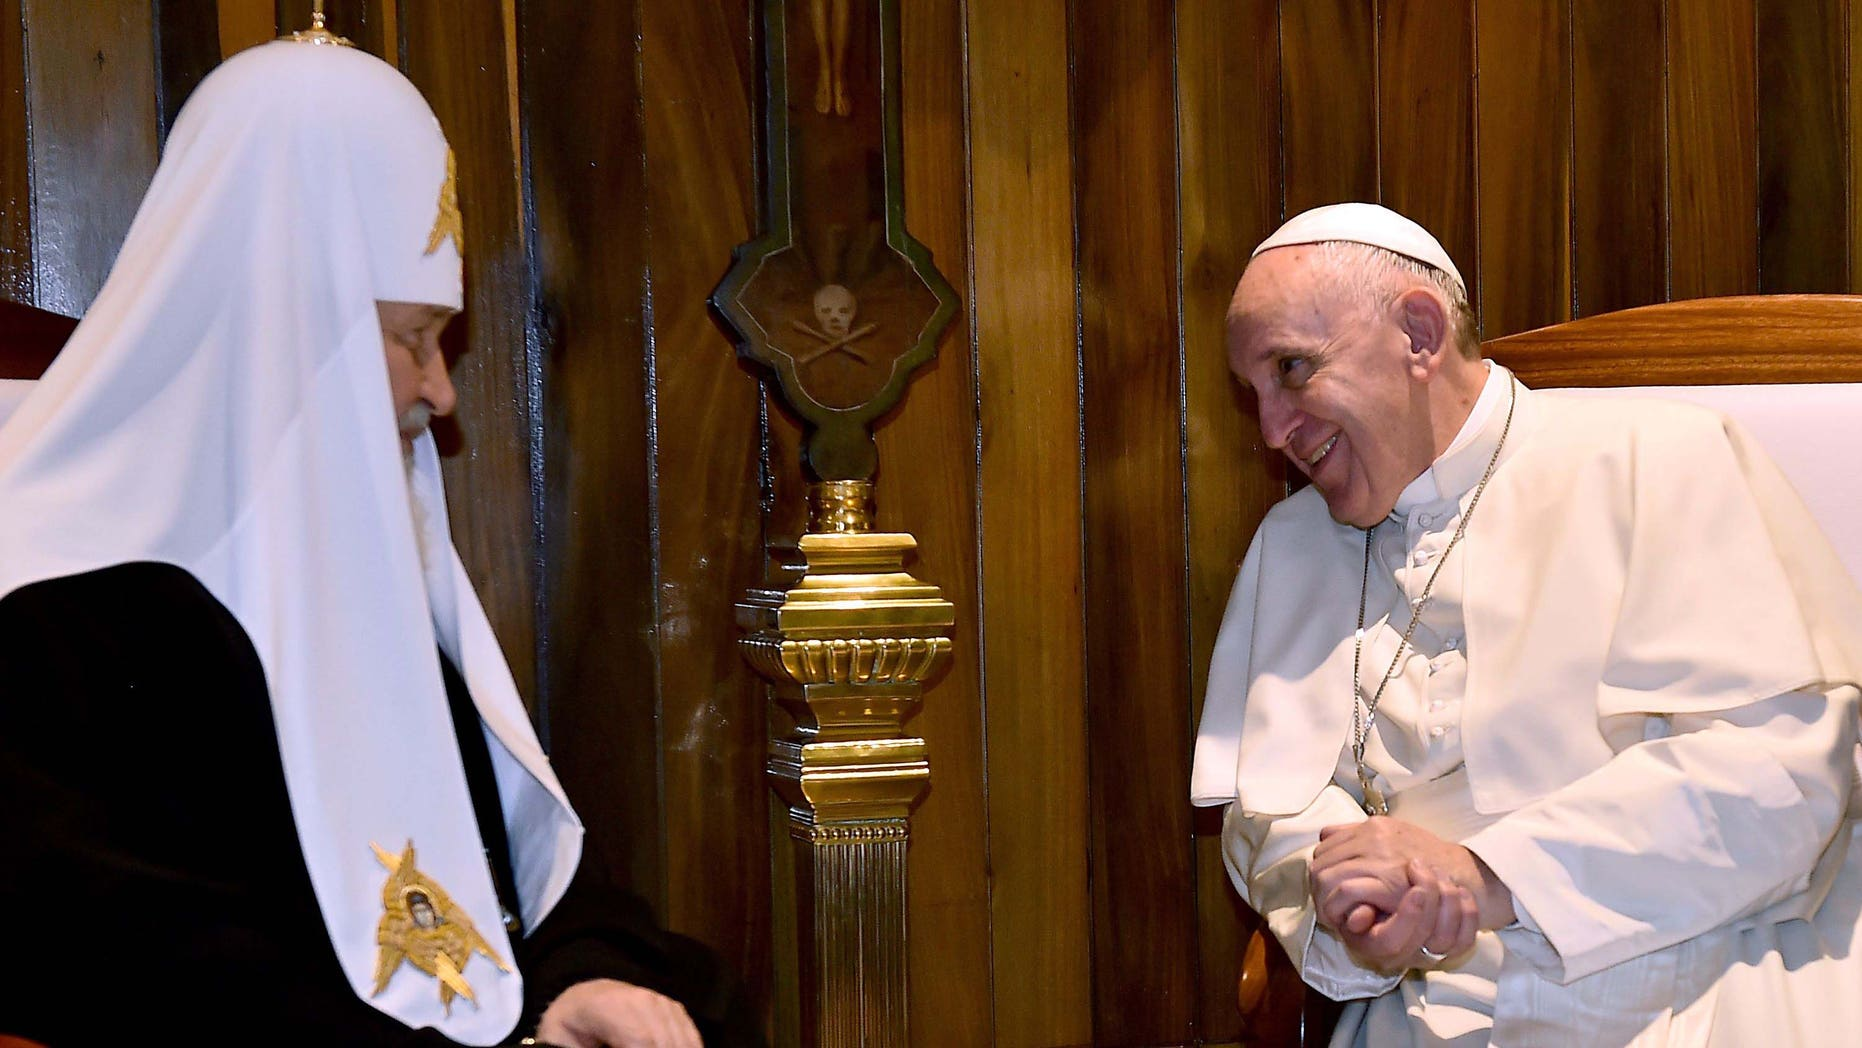 Pope Francis (R) meets with the head of the Russian Orthodox Church, Patriarch Kirill, in Havana on February 12, 2016. The meeting is the first of its kind since an 11th-century schism split Christianity into Western and Eastern branches. AFP PHOTO / GABRIEL BOUYS / AFP / GABRIEL BOUYS        (Photo credit should read GABRIEL BOUYS/AFP/Getty Images)